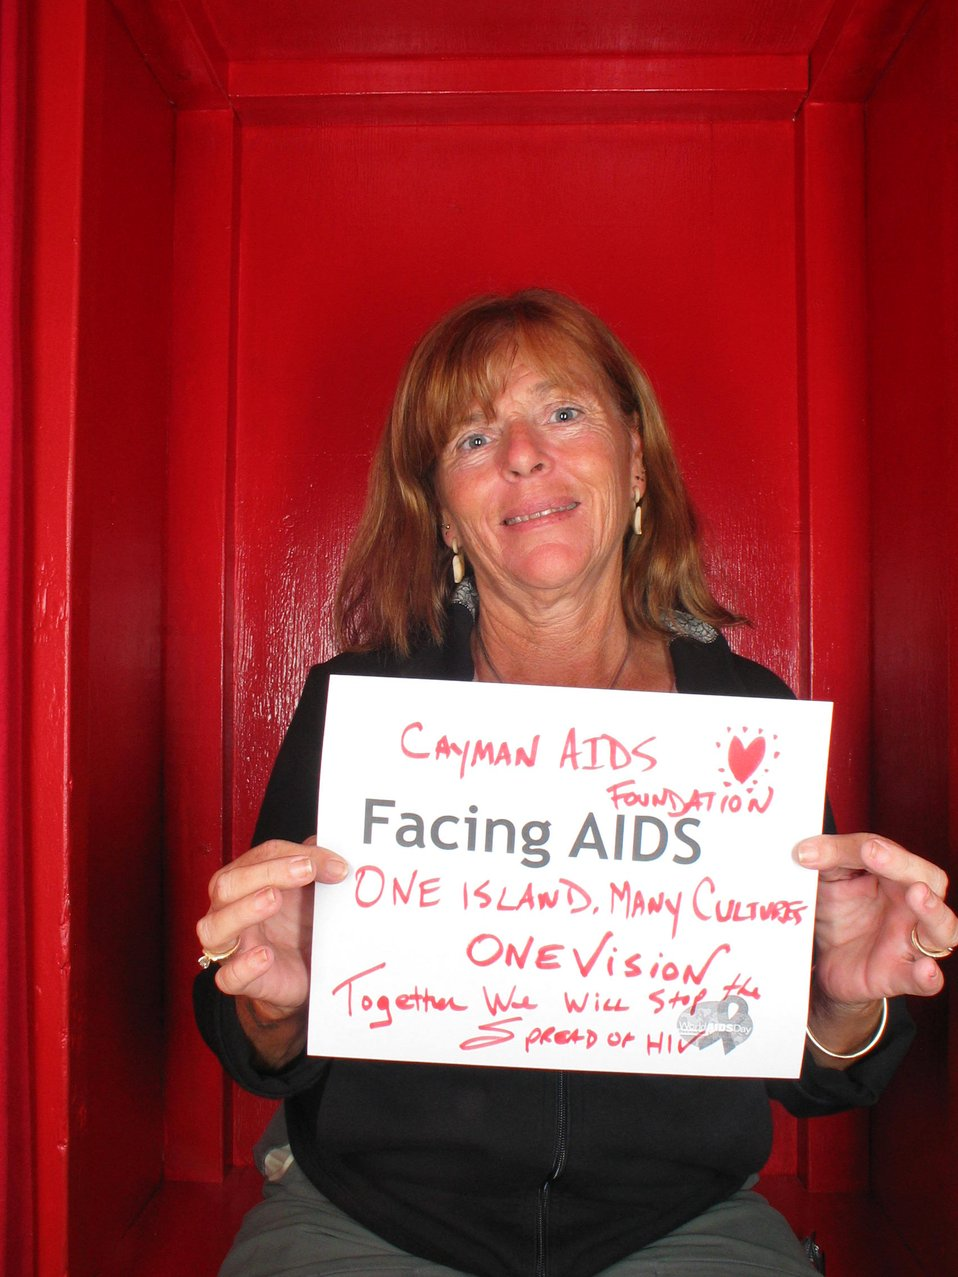 Facing AIDS One Island, Many Cultures, Together we will stop the spread of HIV